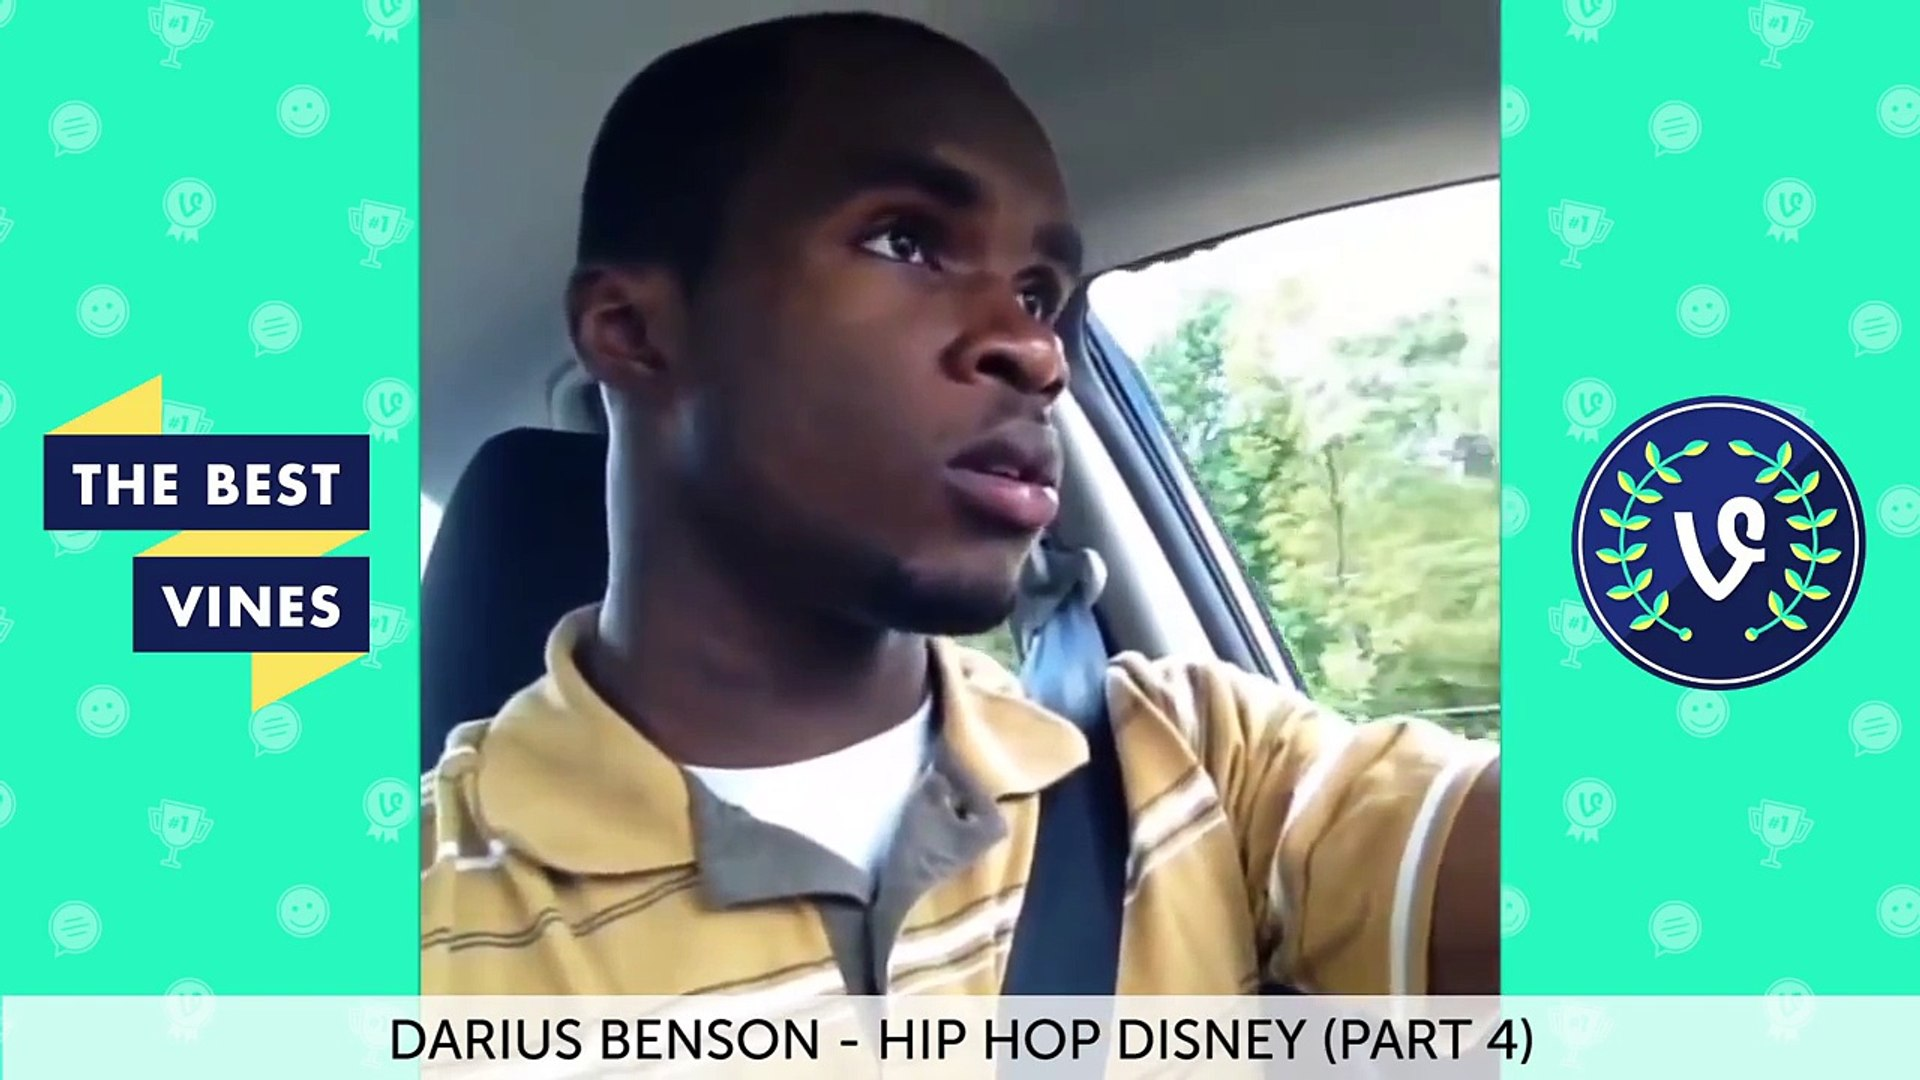 #TBT ULTIMATE Hip Hop Disney Vine Compilation CLASSIC FUNNY Vines 1 | Hip hop disney